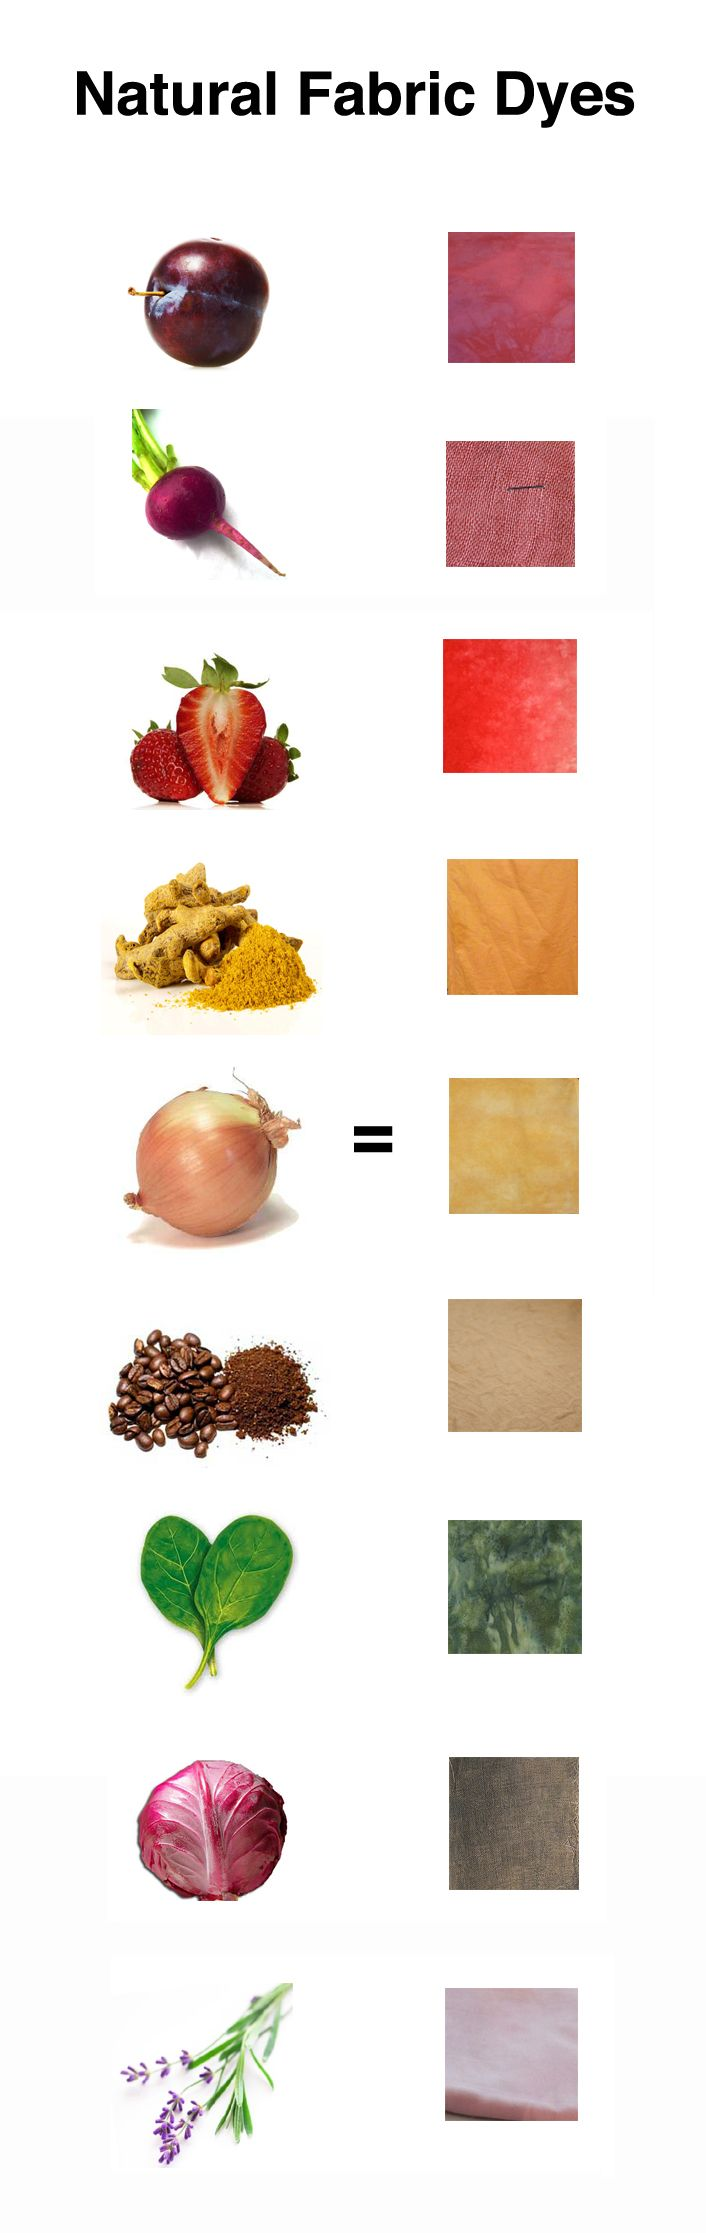 A useful (and beautiful) chart of natural fabric dyes.